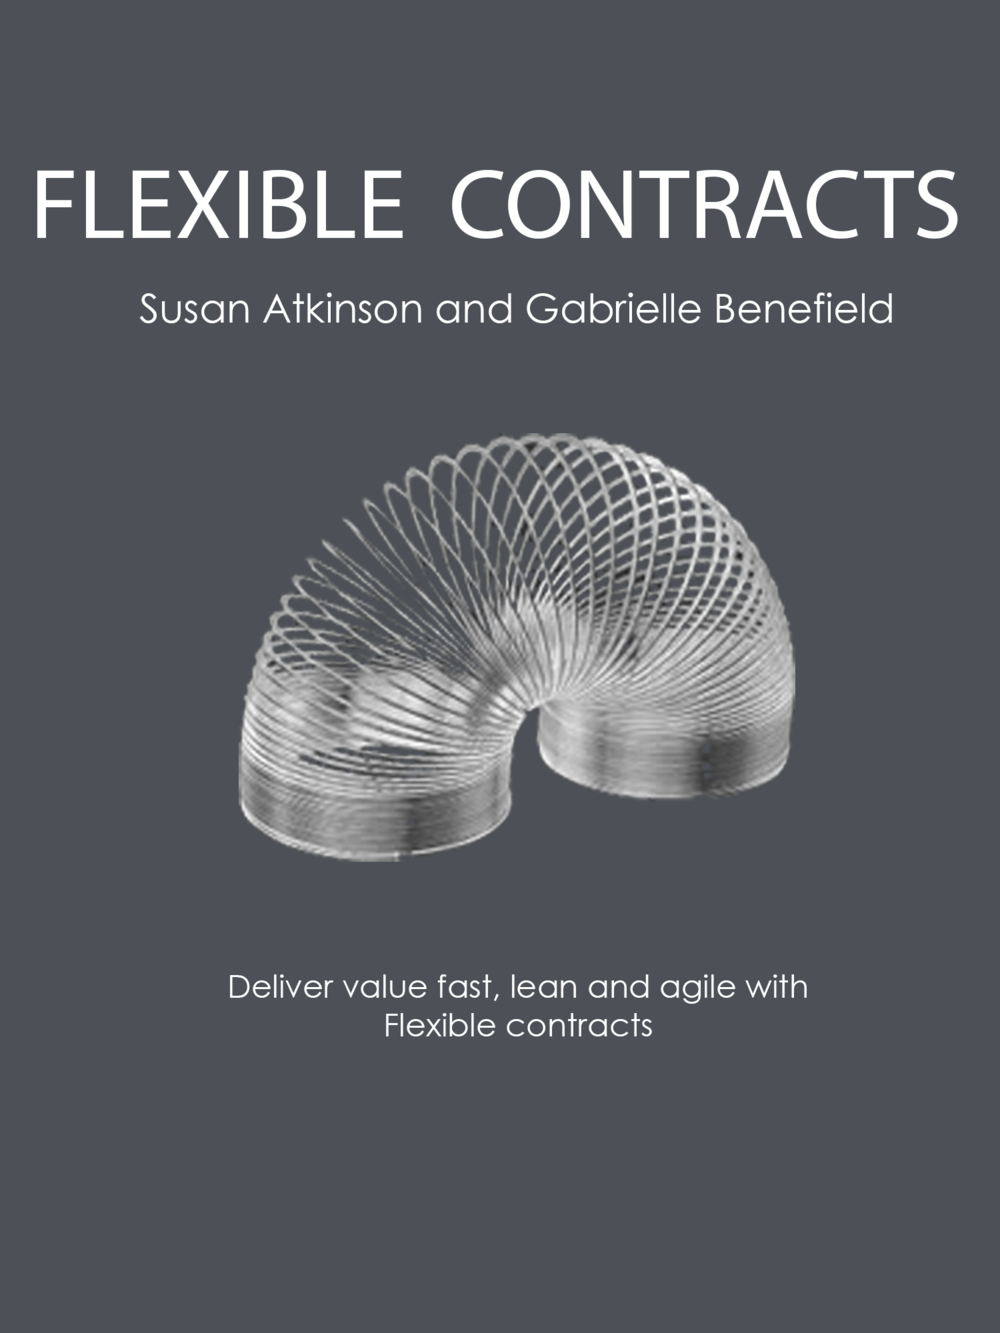 FlexContractsBookCoverTwo.png